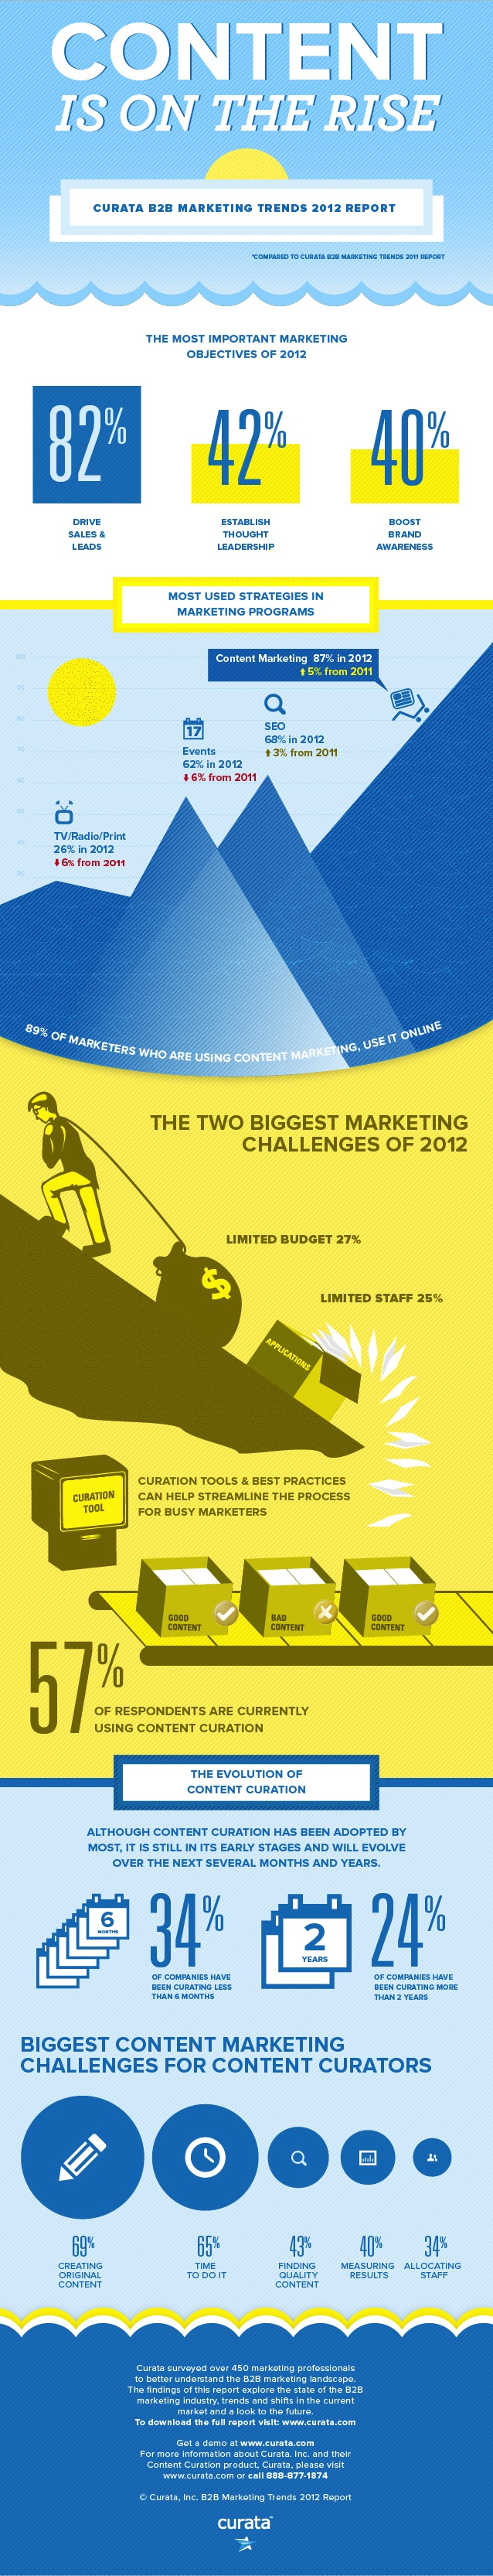 curata-b2b-marketing-trends-2012-infographic